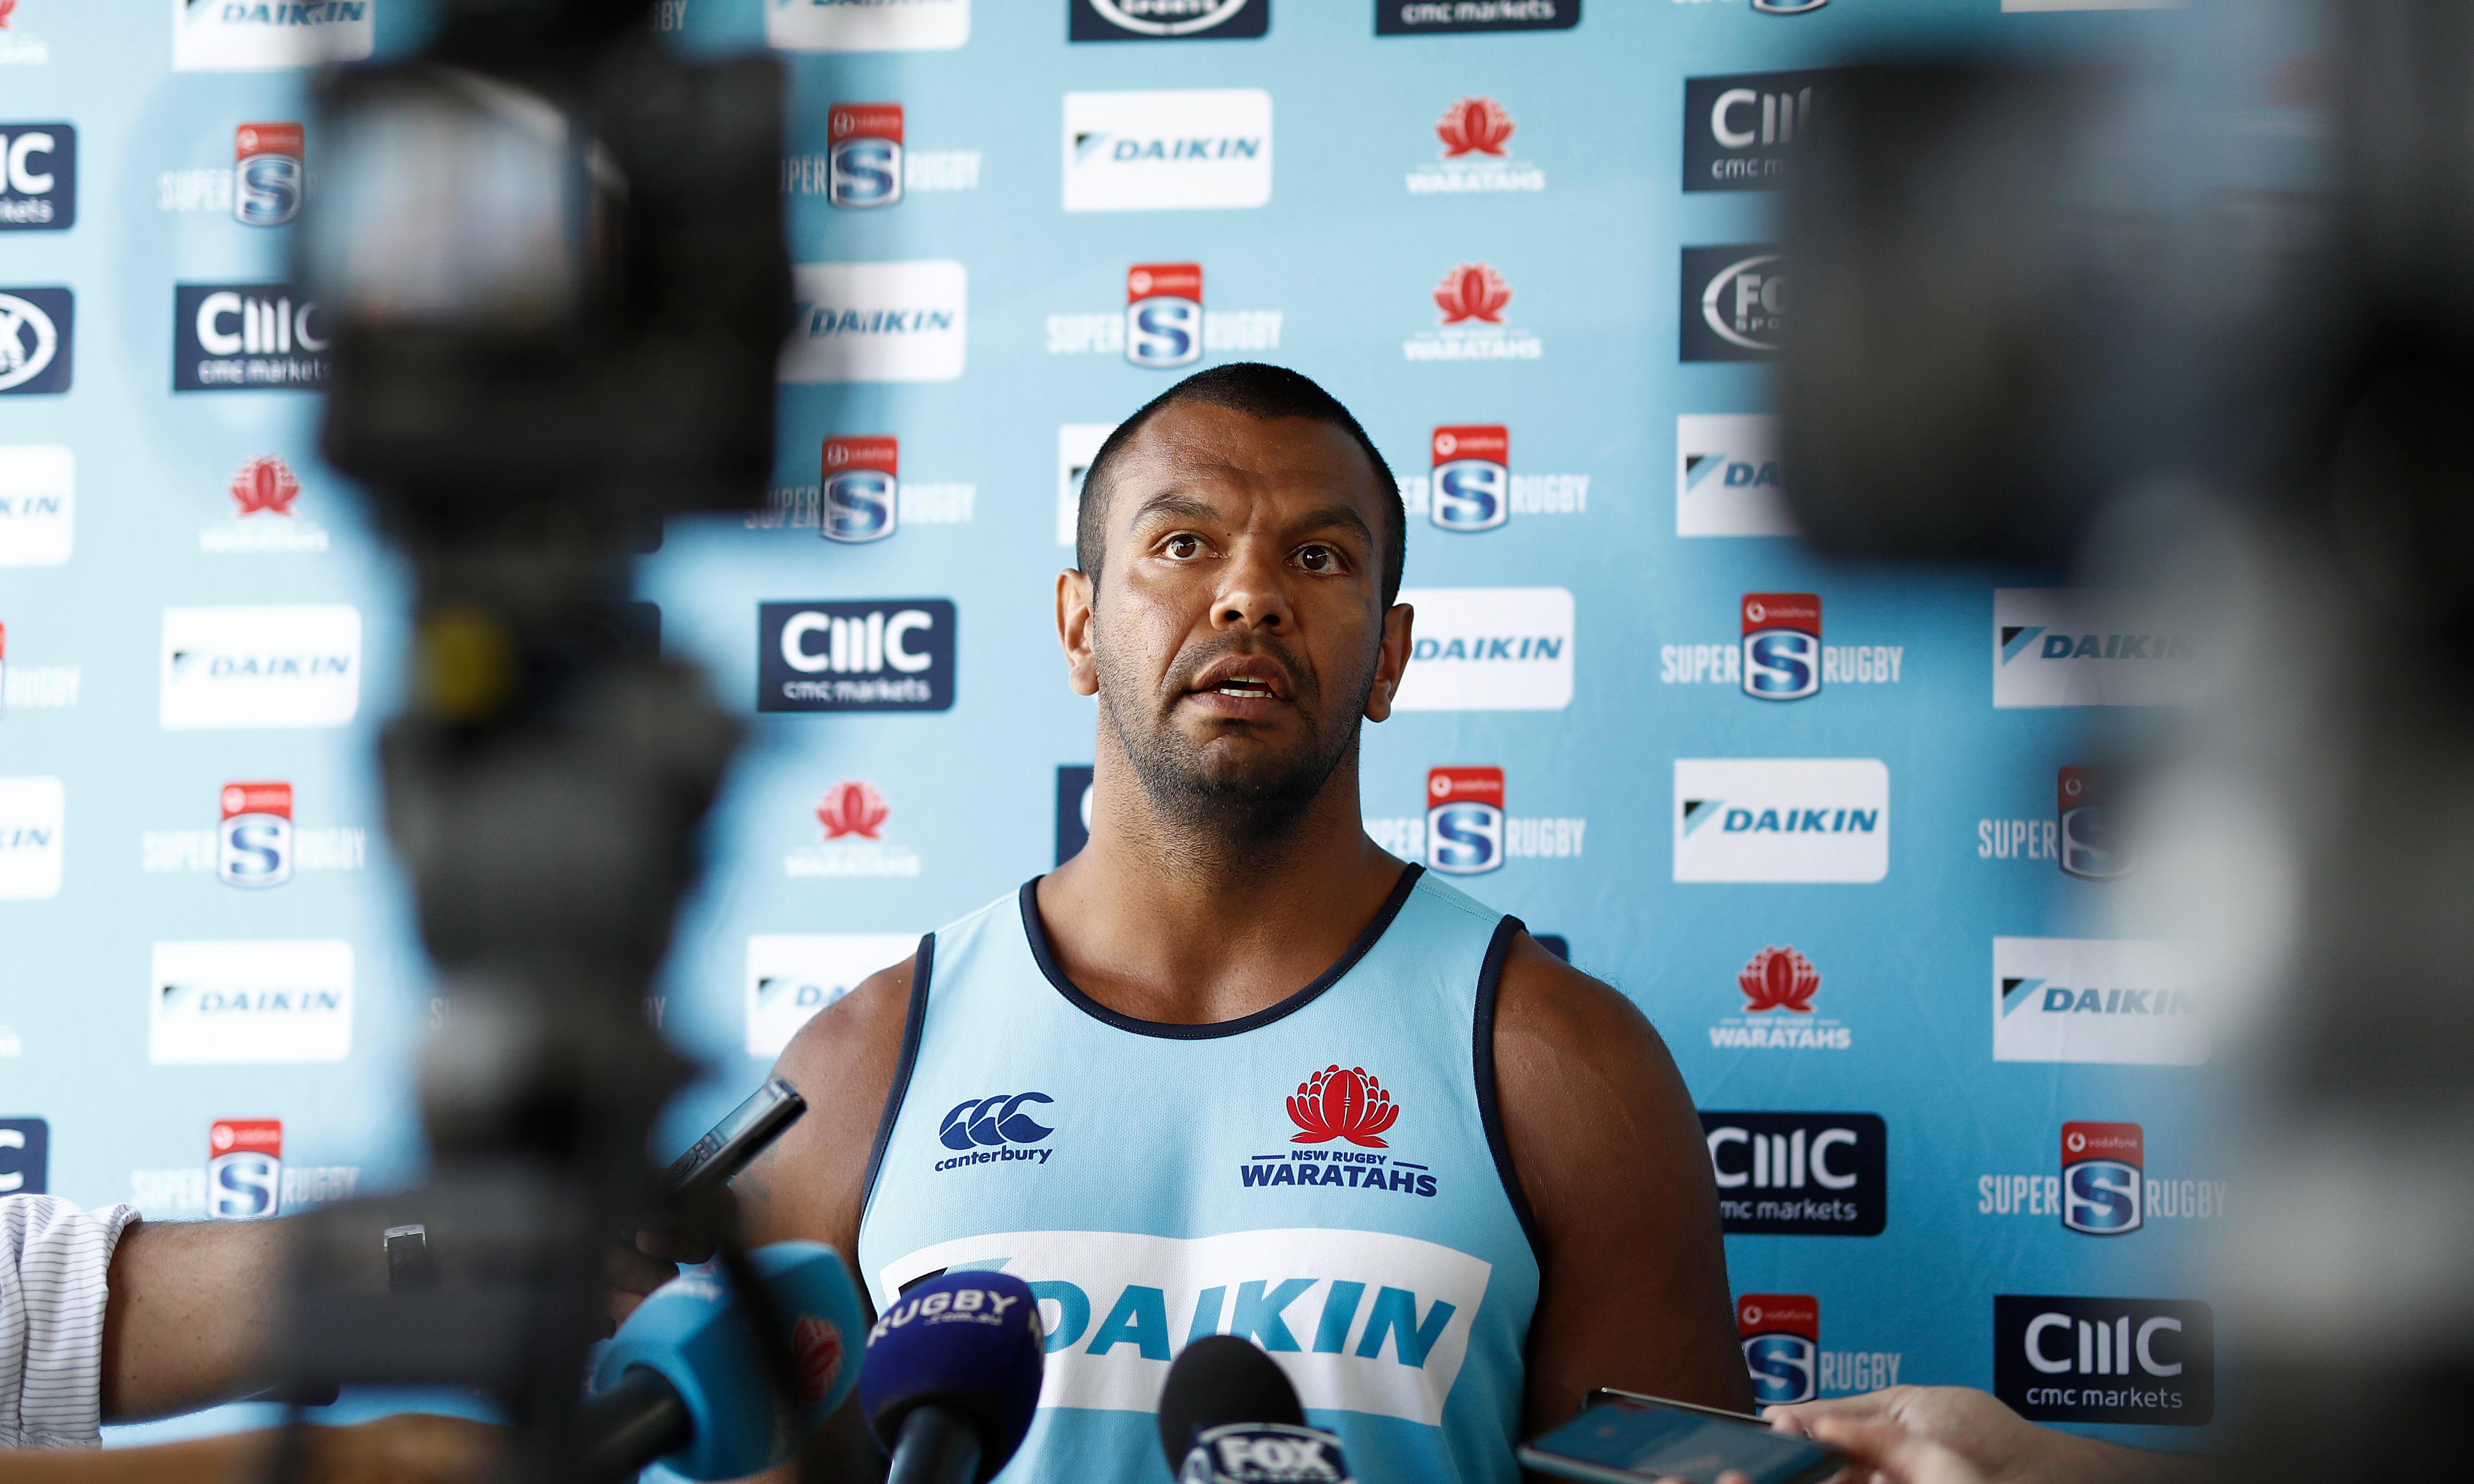 Kurtley Beale ready to move on after creating 'bad image' for rugby with videos